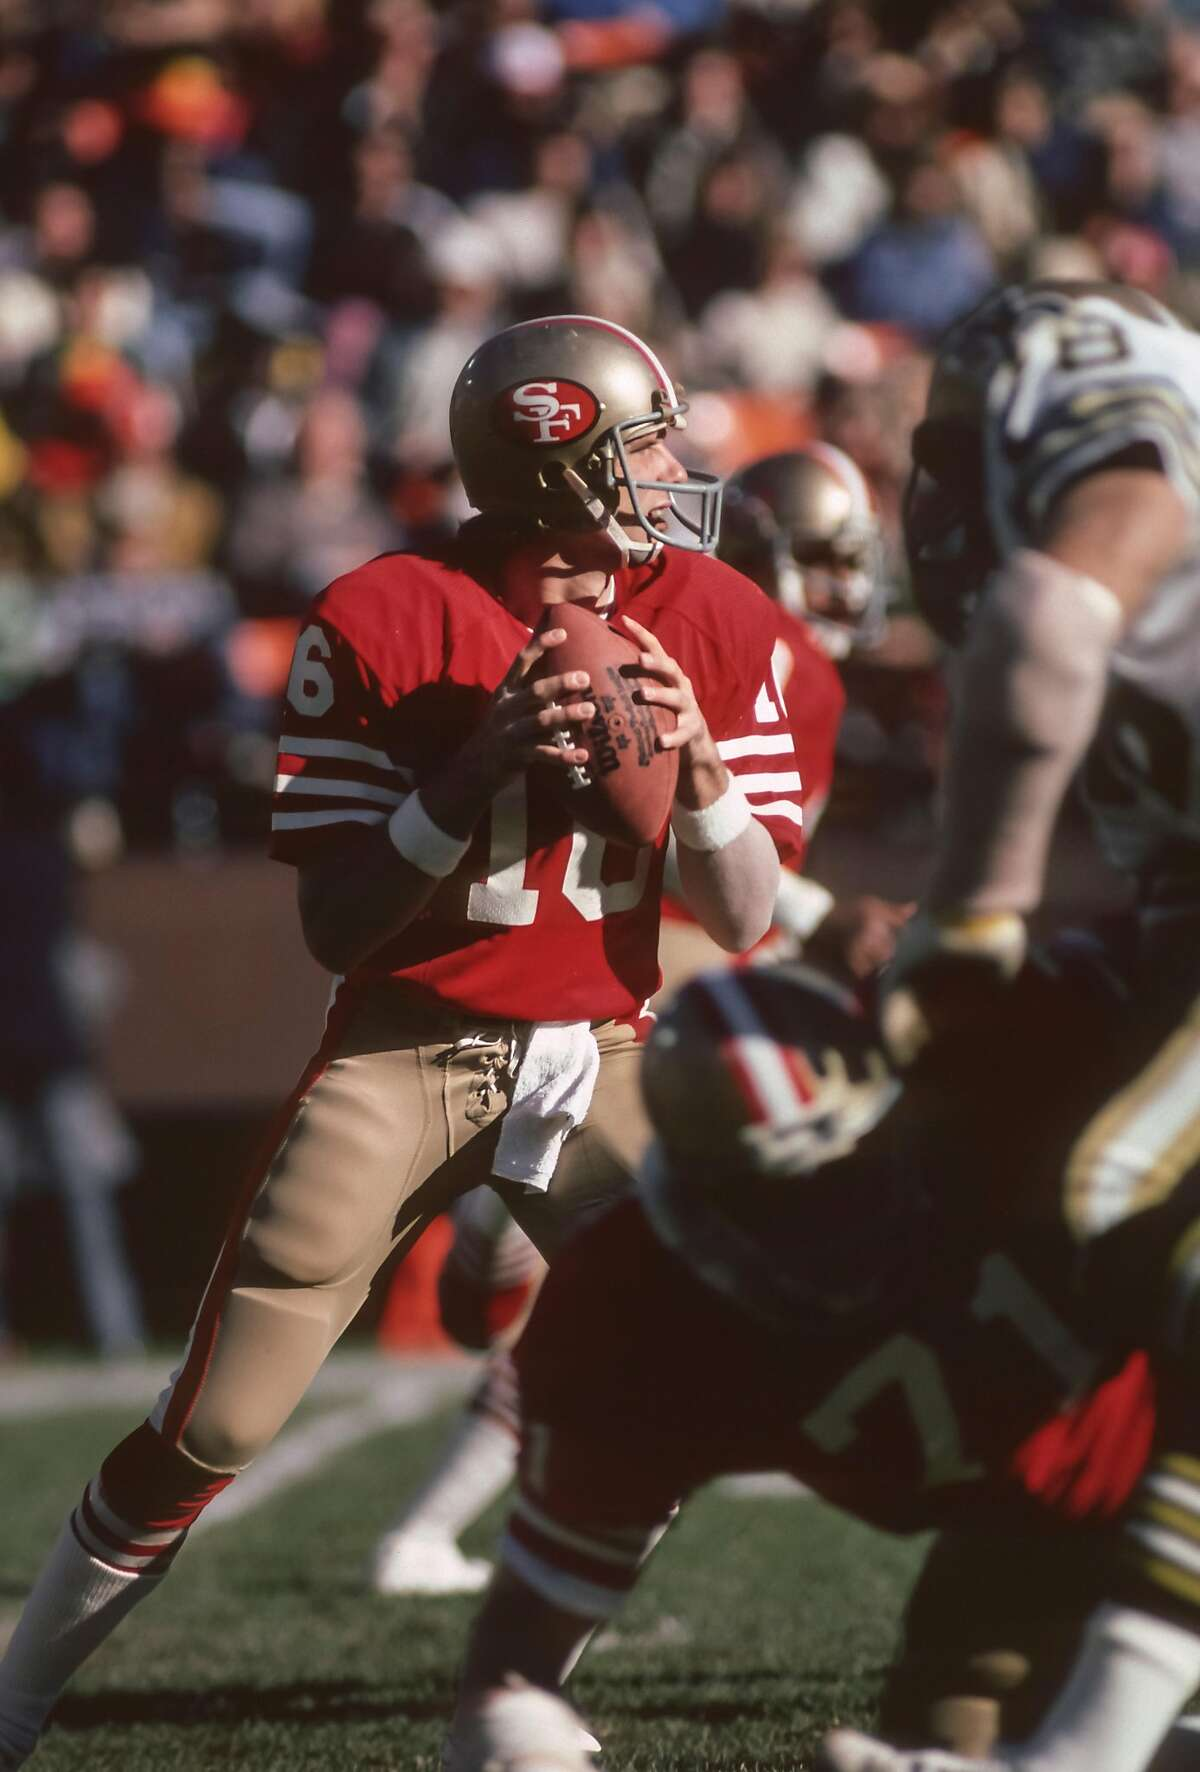 Joe Montana #16 of the San Francisco 49ers attempts a pass during an NFL game against the New Orleans Saints played on December 7, 1980 at Candlestick Park in San Francisco, California.